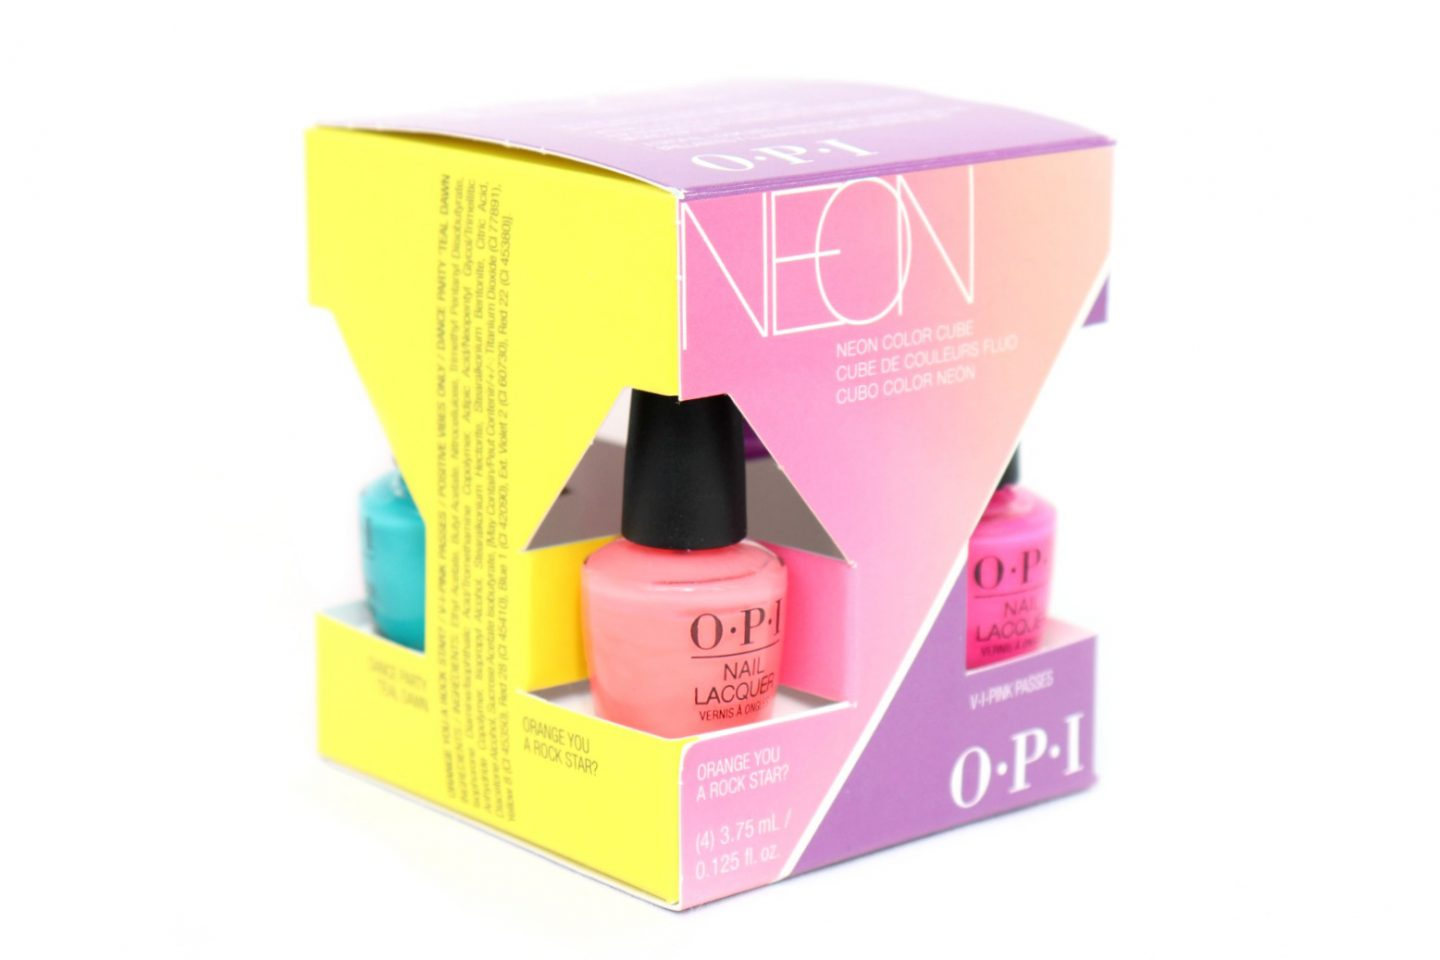 OPI Neon Color Cube review